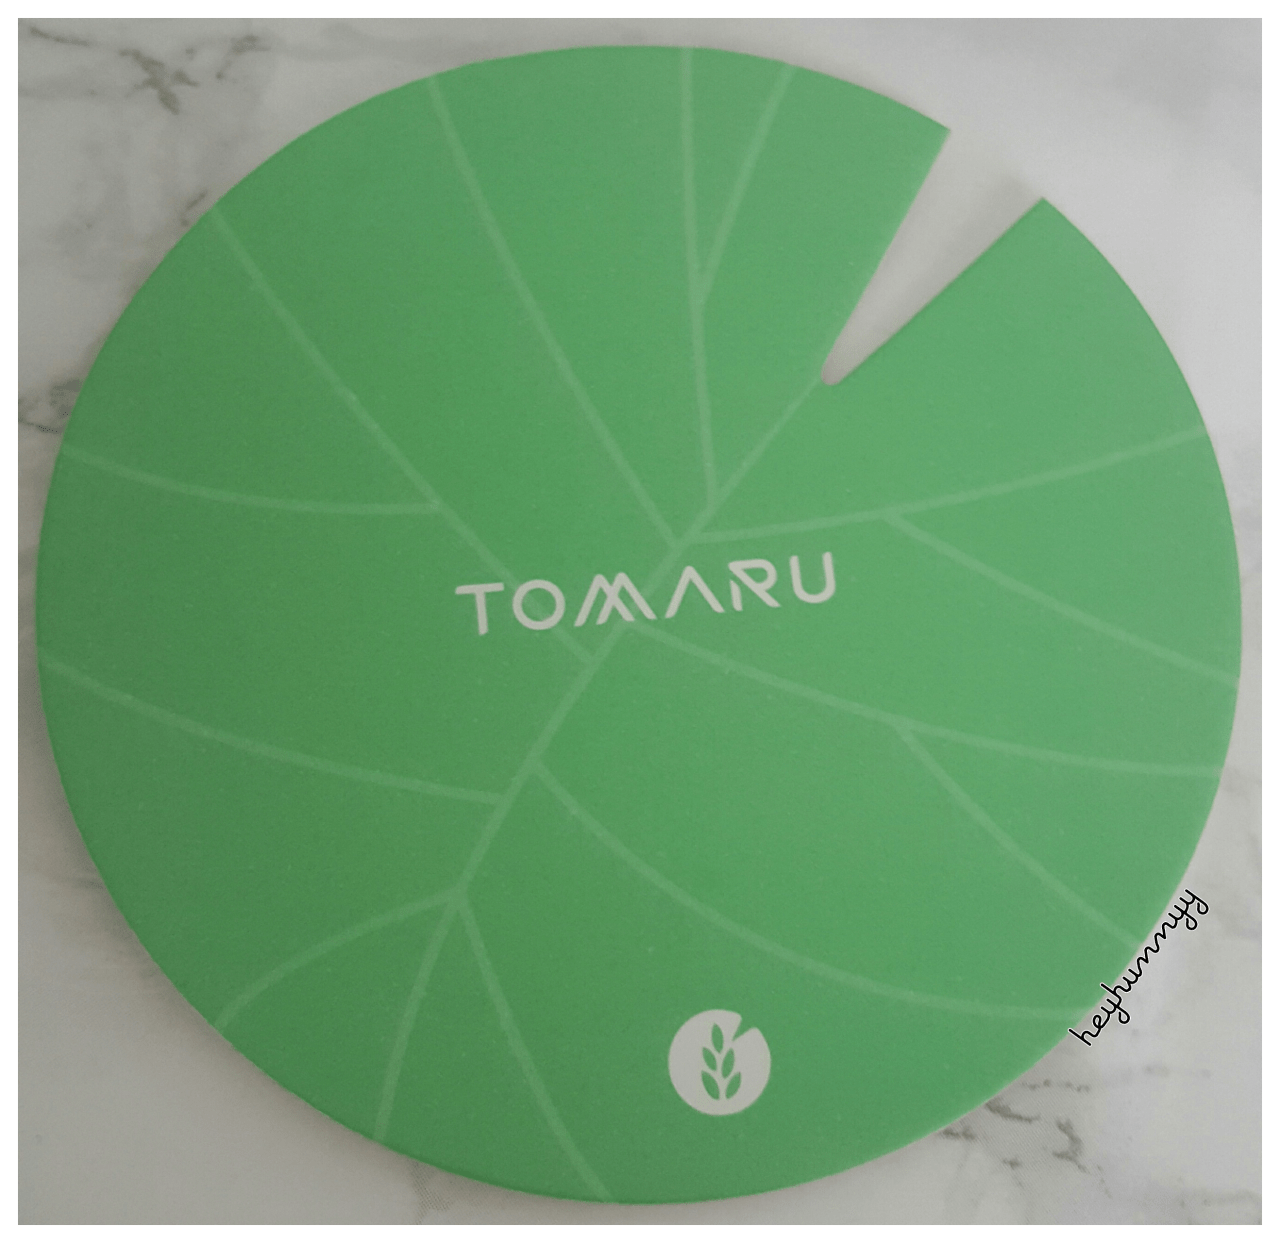 ::REVIEW:: Tomaru Gift Set (The Face Shop) hunnyy hunnyybeauty